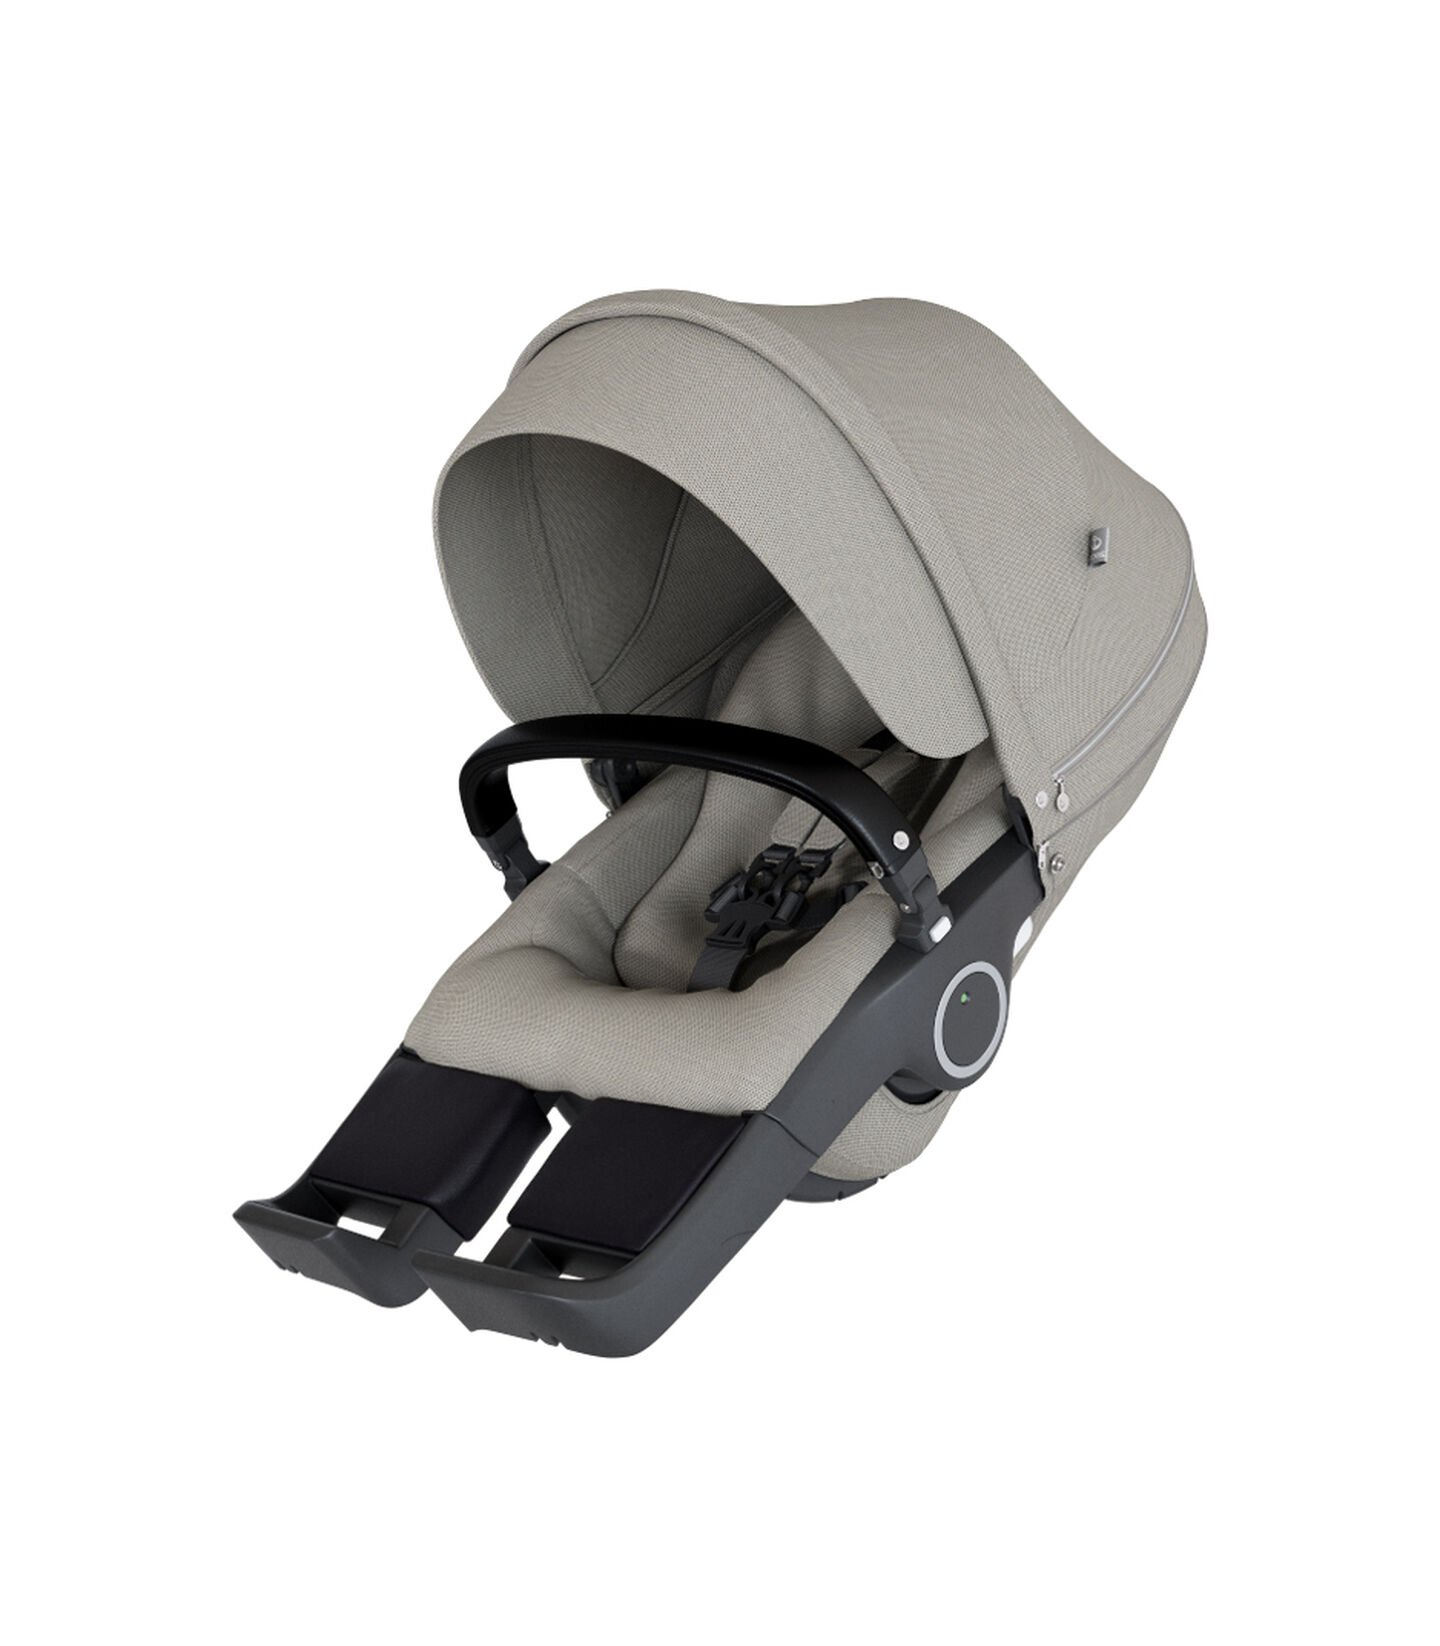 Stokke® Stroller Seat Complete Brushed Grey, Brushed Grey, mainview